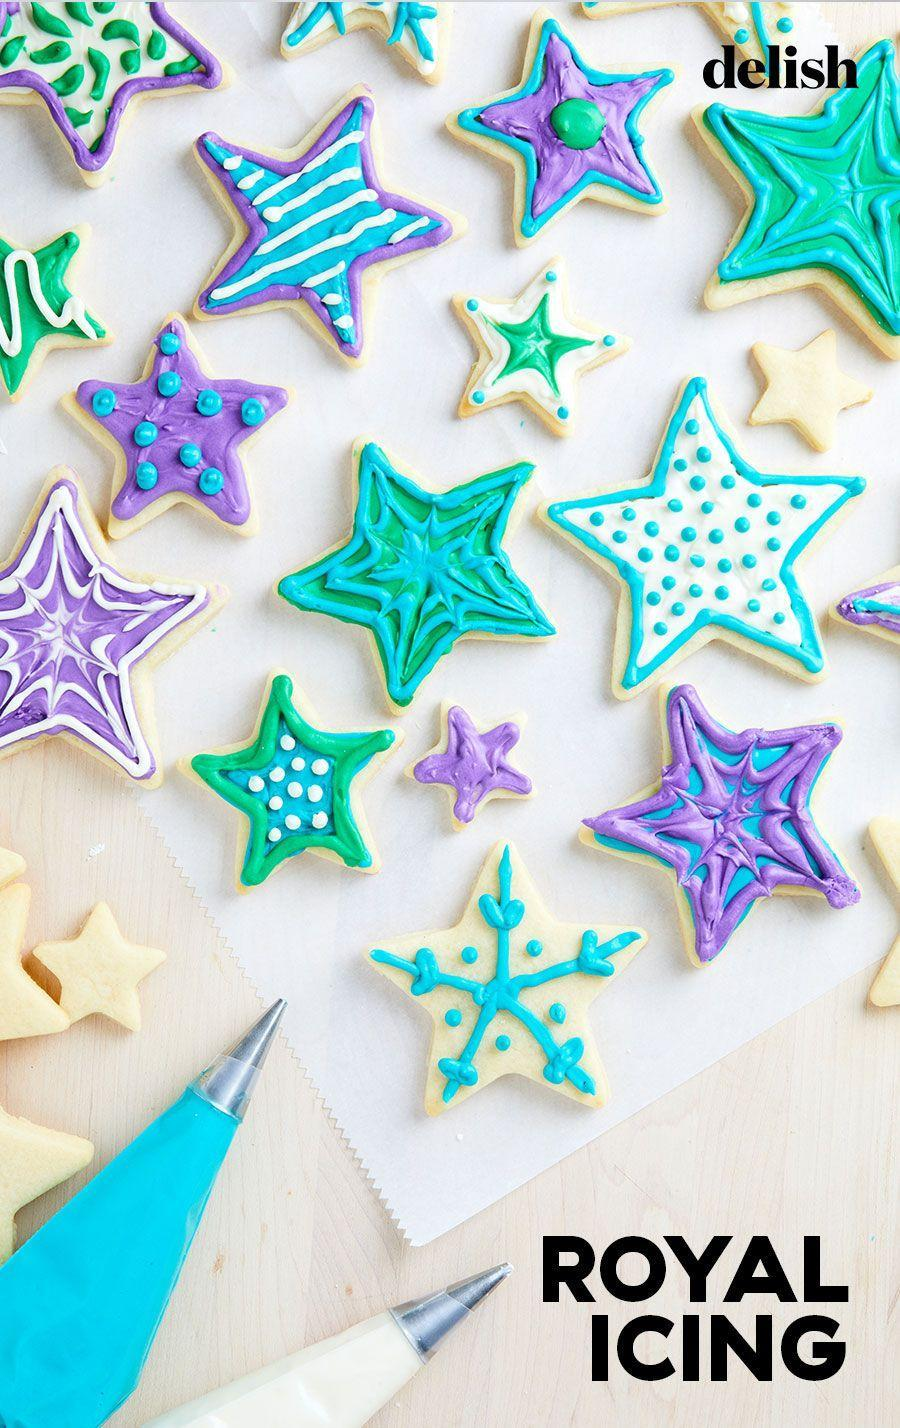 """<p>For the prettiest cookies, give them the royal treatment.</p><p>Get the recipe from <a href=""""https://www.delish.com/cooking/recipe-ideas/a35034250/royal-icing-for-cookies-recipe/"""" rel=""""nofollow noopener"""" target=""""_blank"""" data-ylk=""""slk:Delish"""" class=""""link rapid-noclick-resp"""">Delish</a>.</p>"""